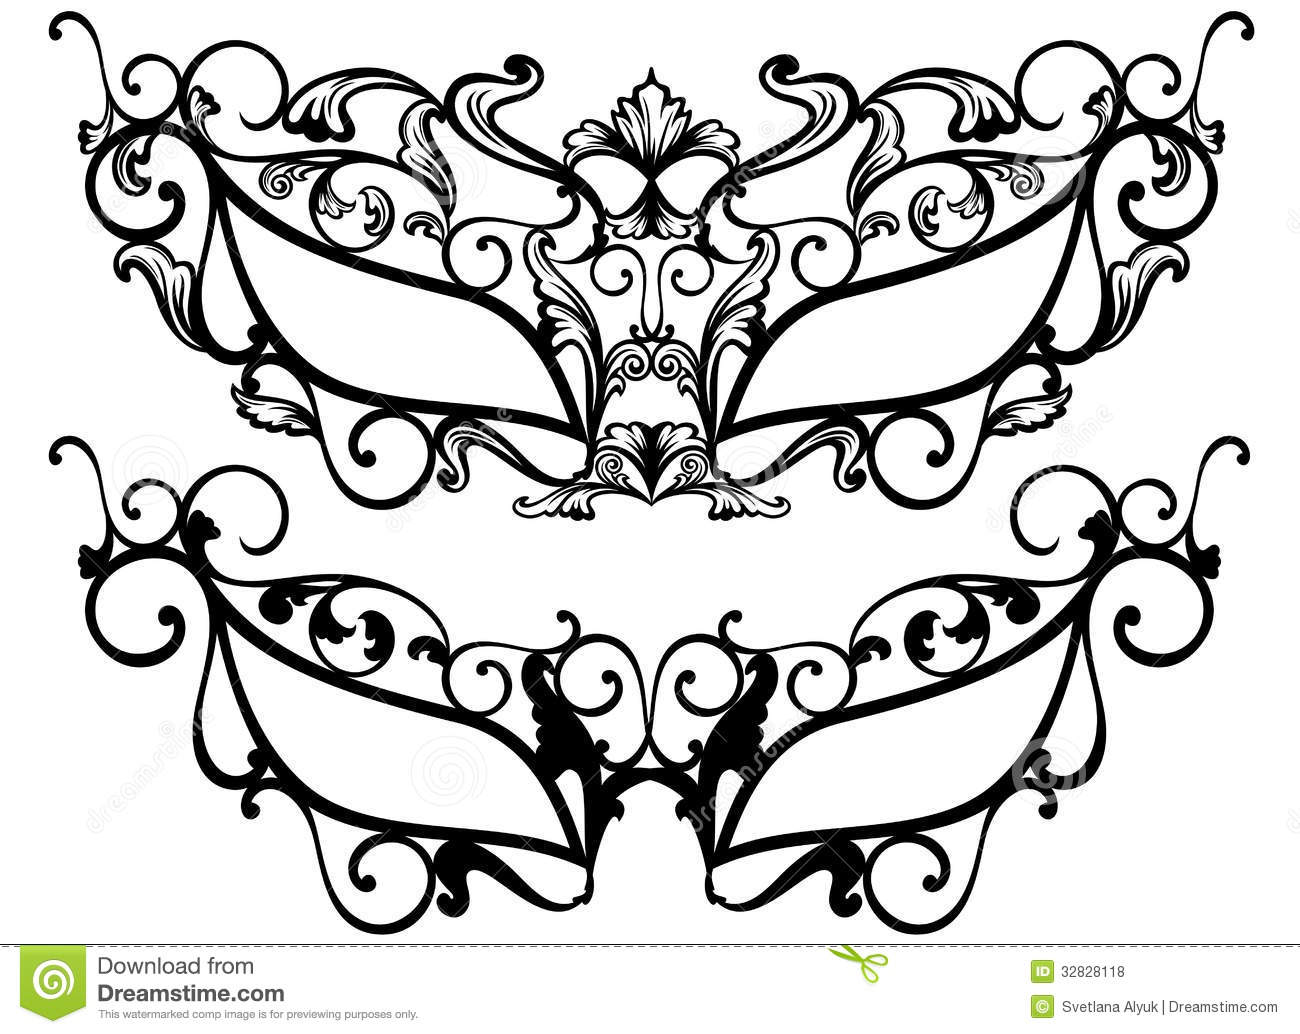 Masquerade clipart mascara Masquerade Vector Royalty Photos